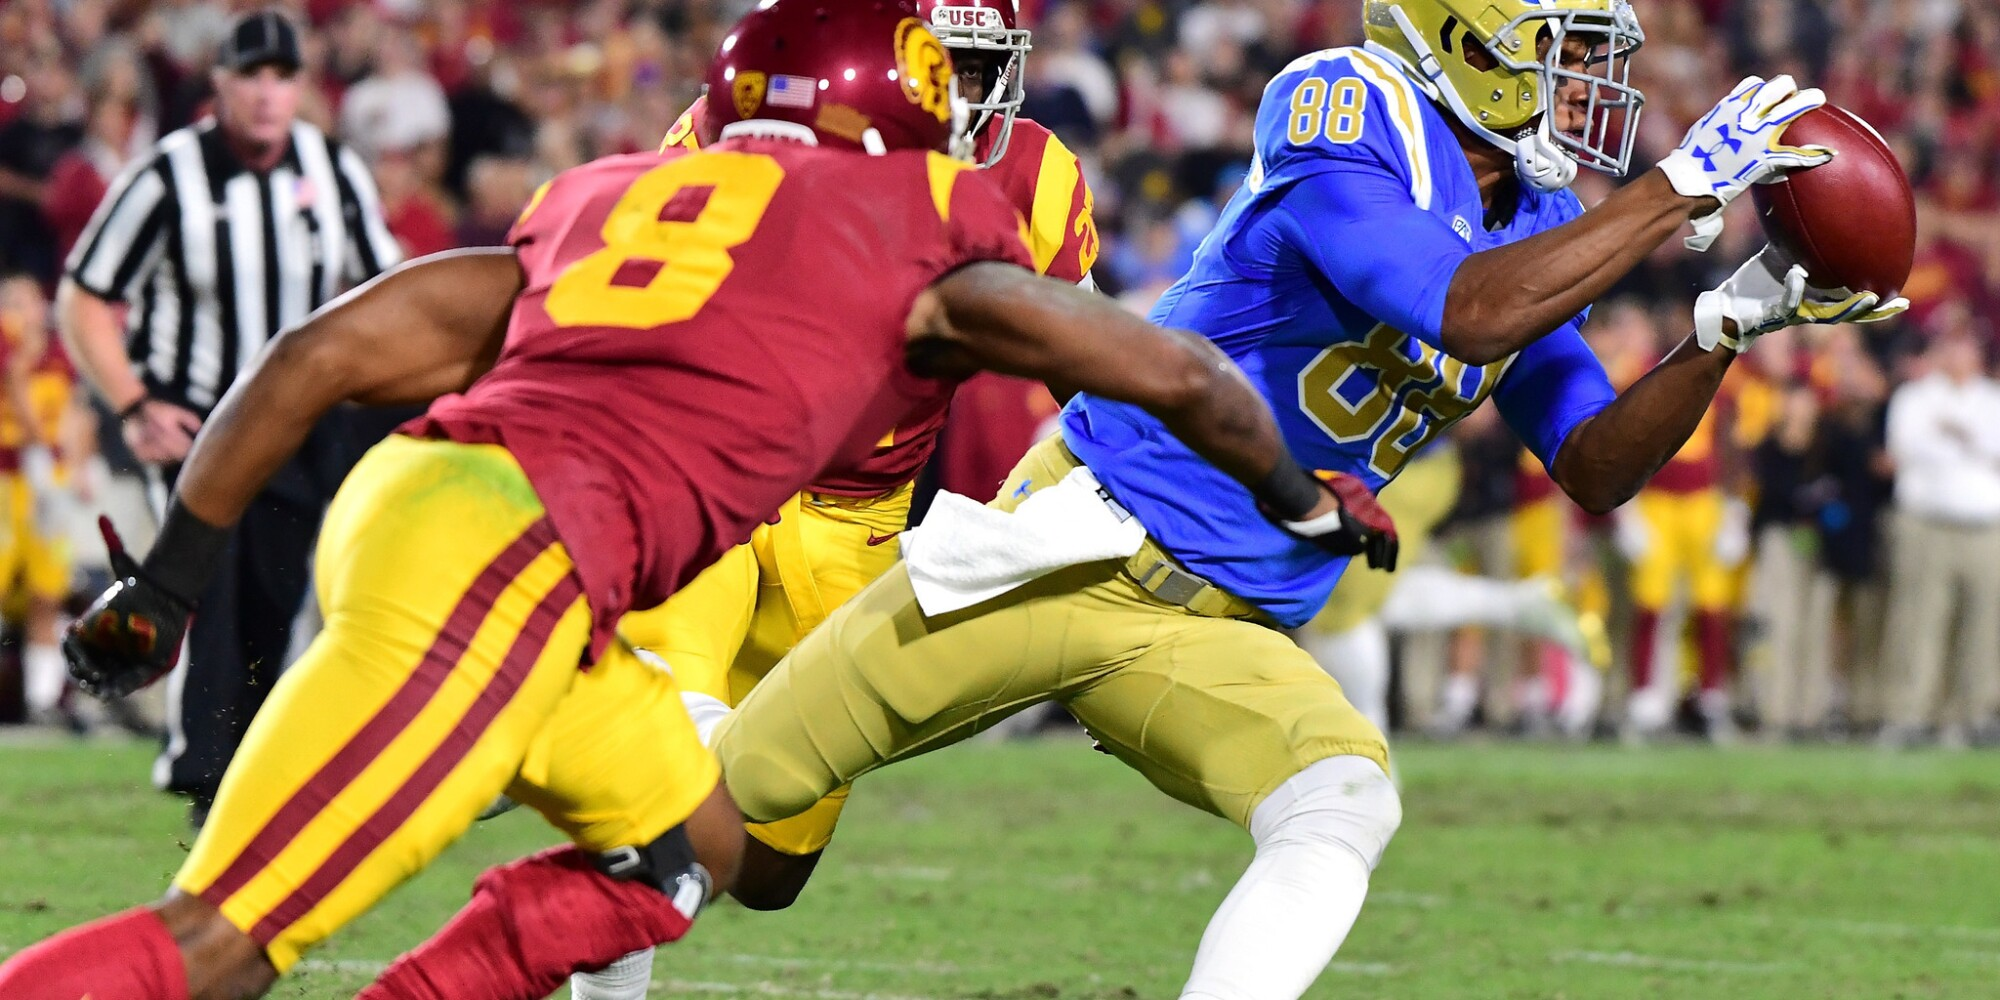 UCLA-USC live updates: Trojans turn back the Bruins, 28-23